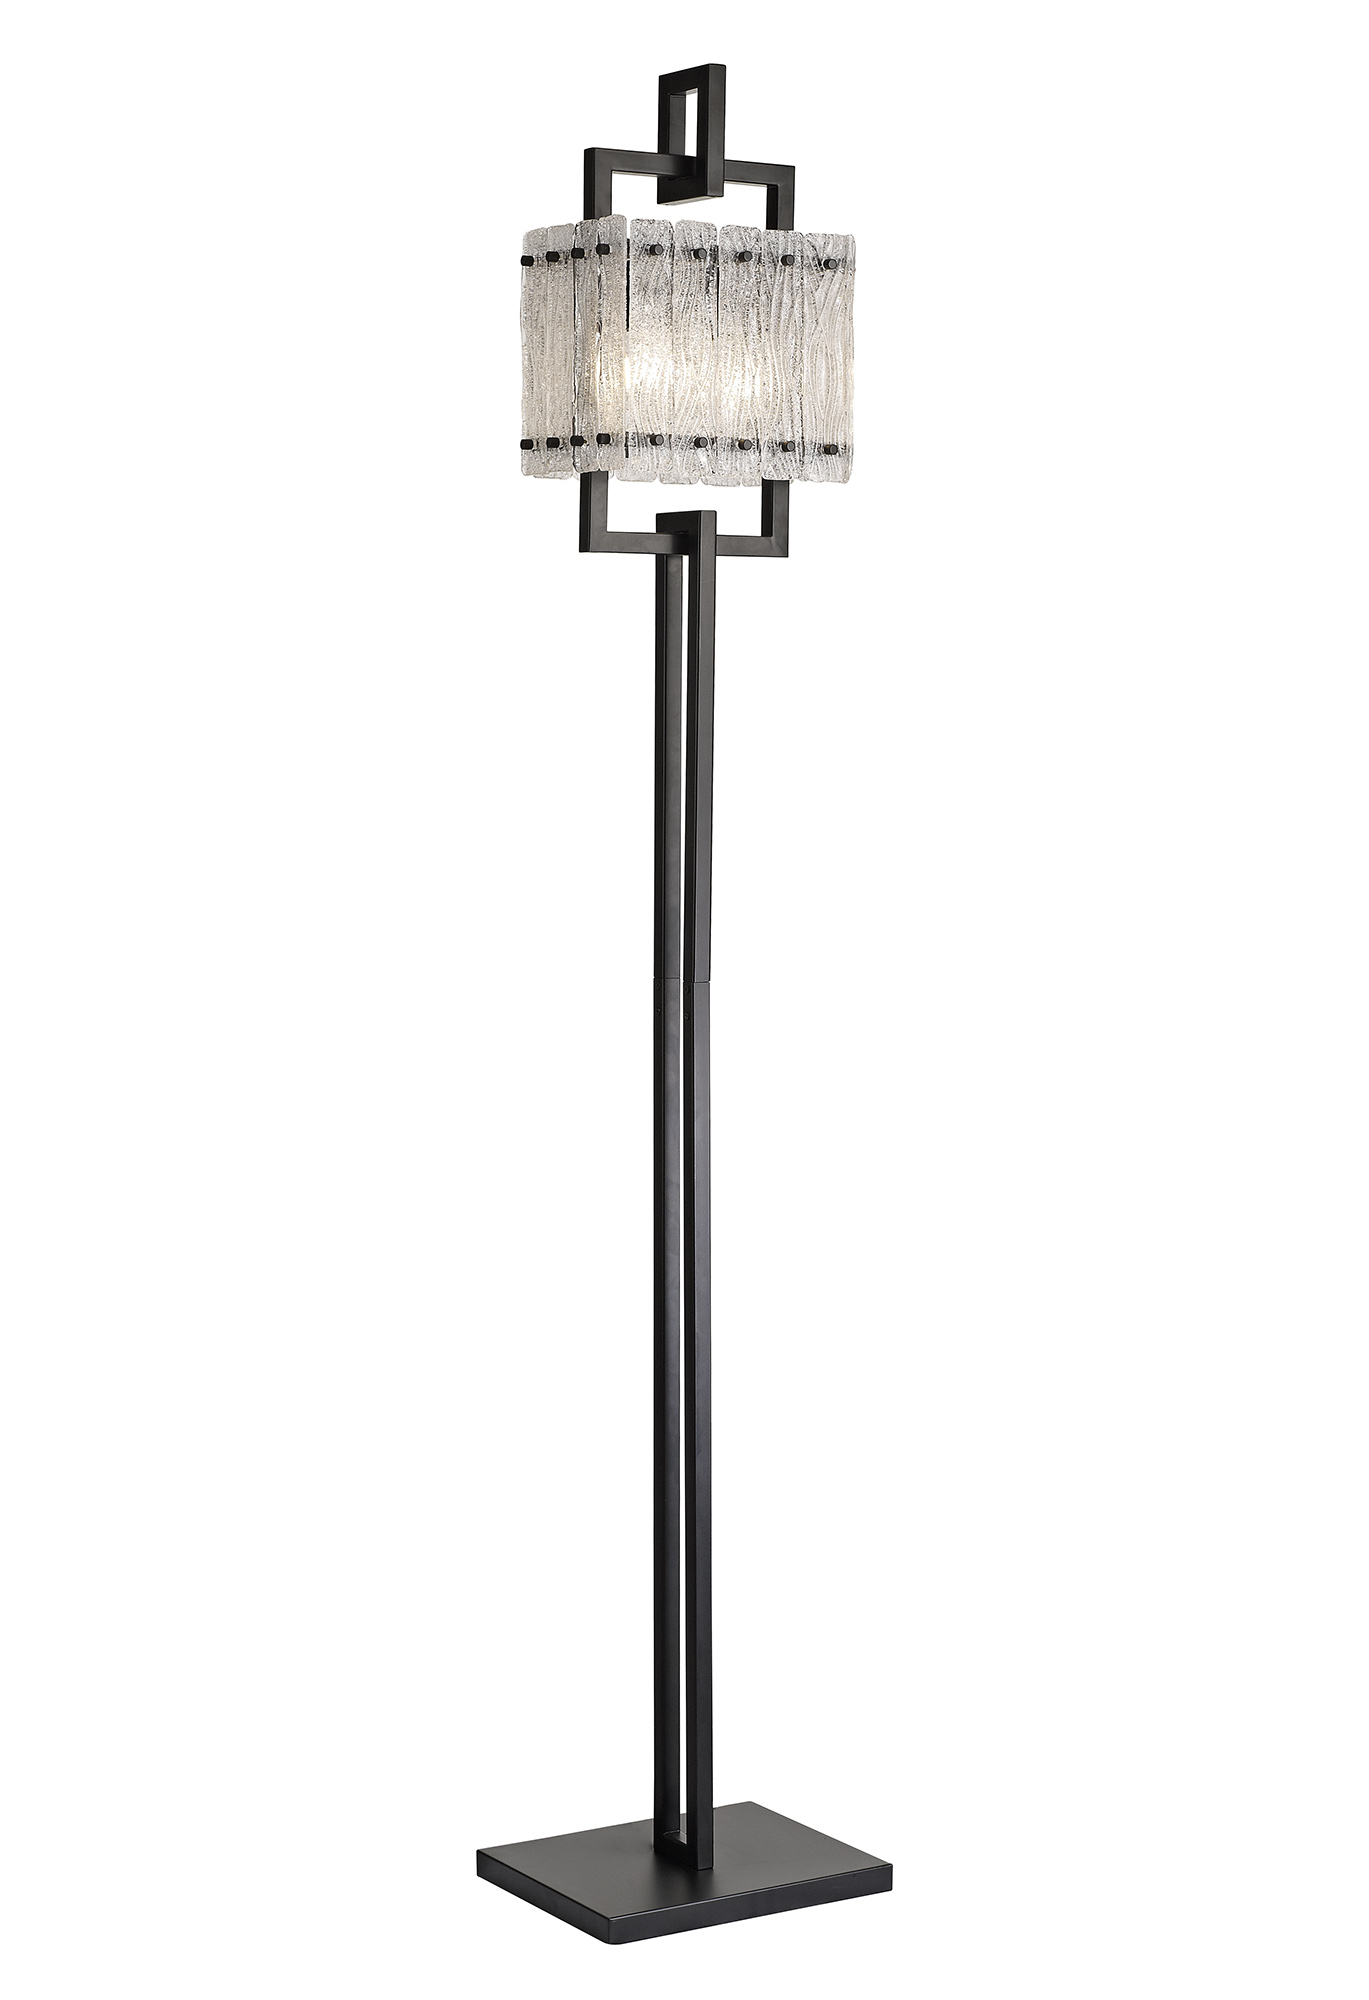 Floor Lamp, 2 Light E27, Matt Black/Crystal Sand Glass